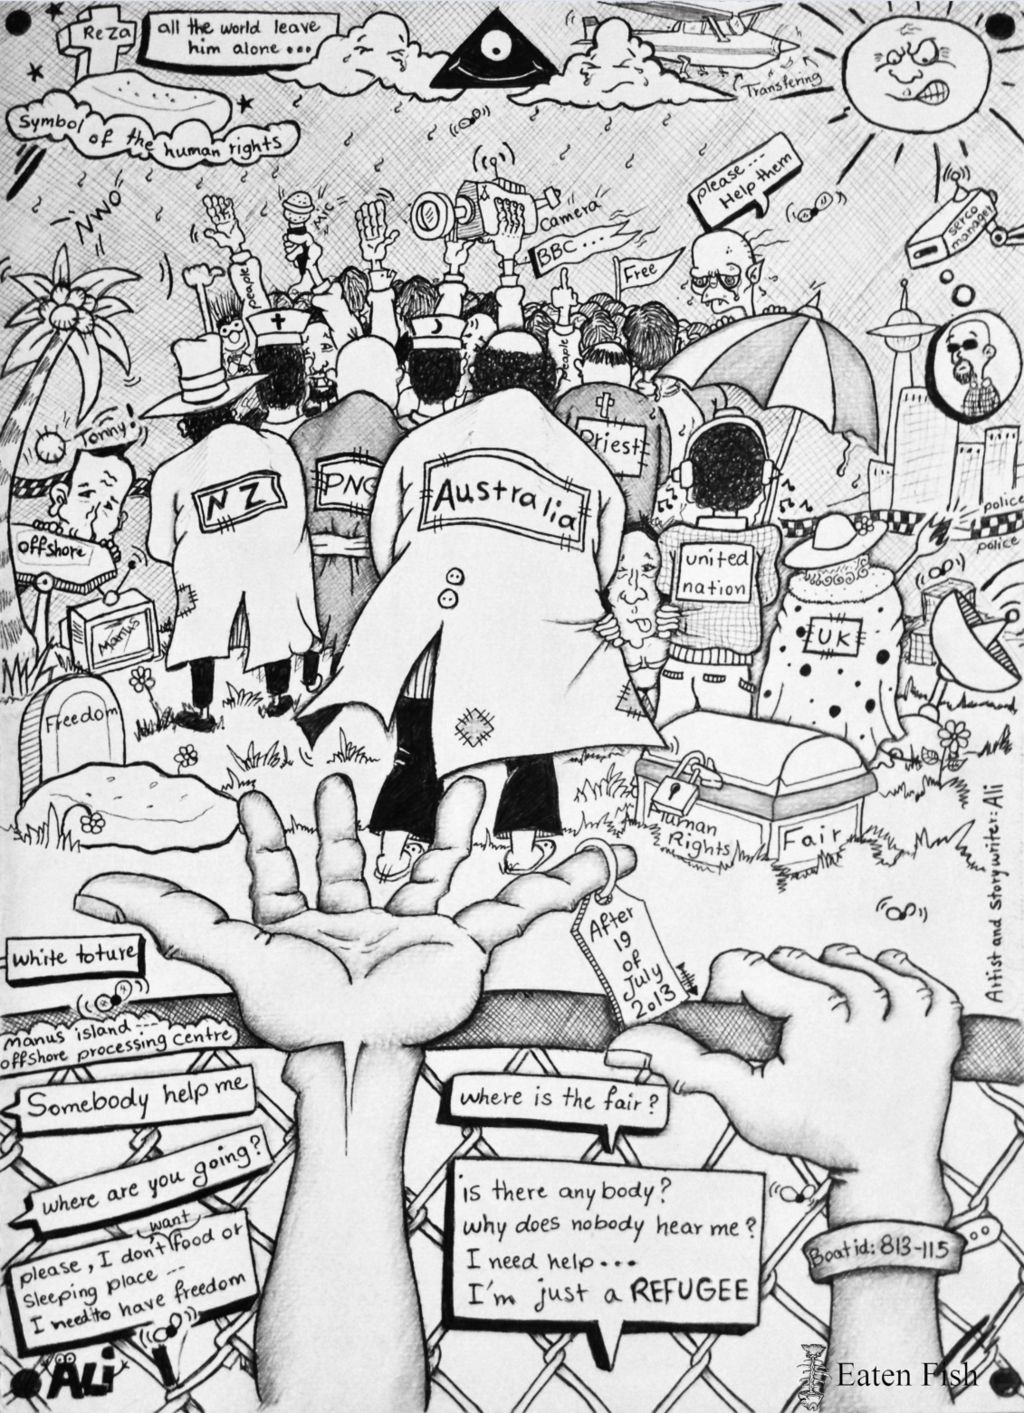 Ali Dorani's drawing, showing several countries turning their backs on refugees on Manus Island